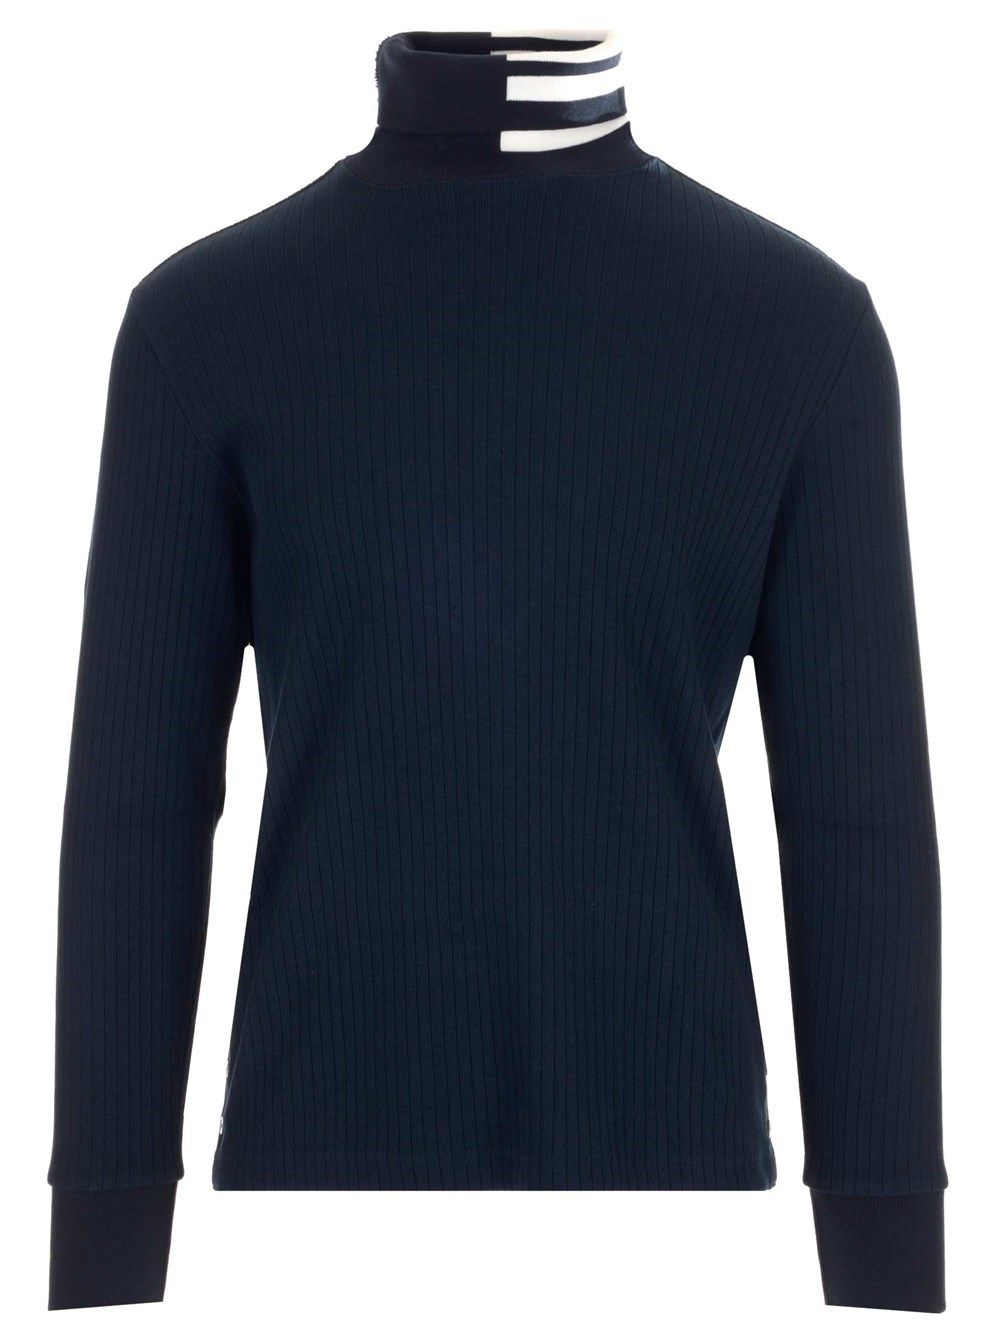 Thom Browne Cottons THOM BROWNE MEN'S MJS135A07063415 BLUE OTHER MATERIALS SWEATER